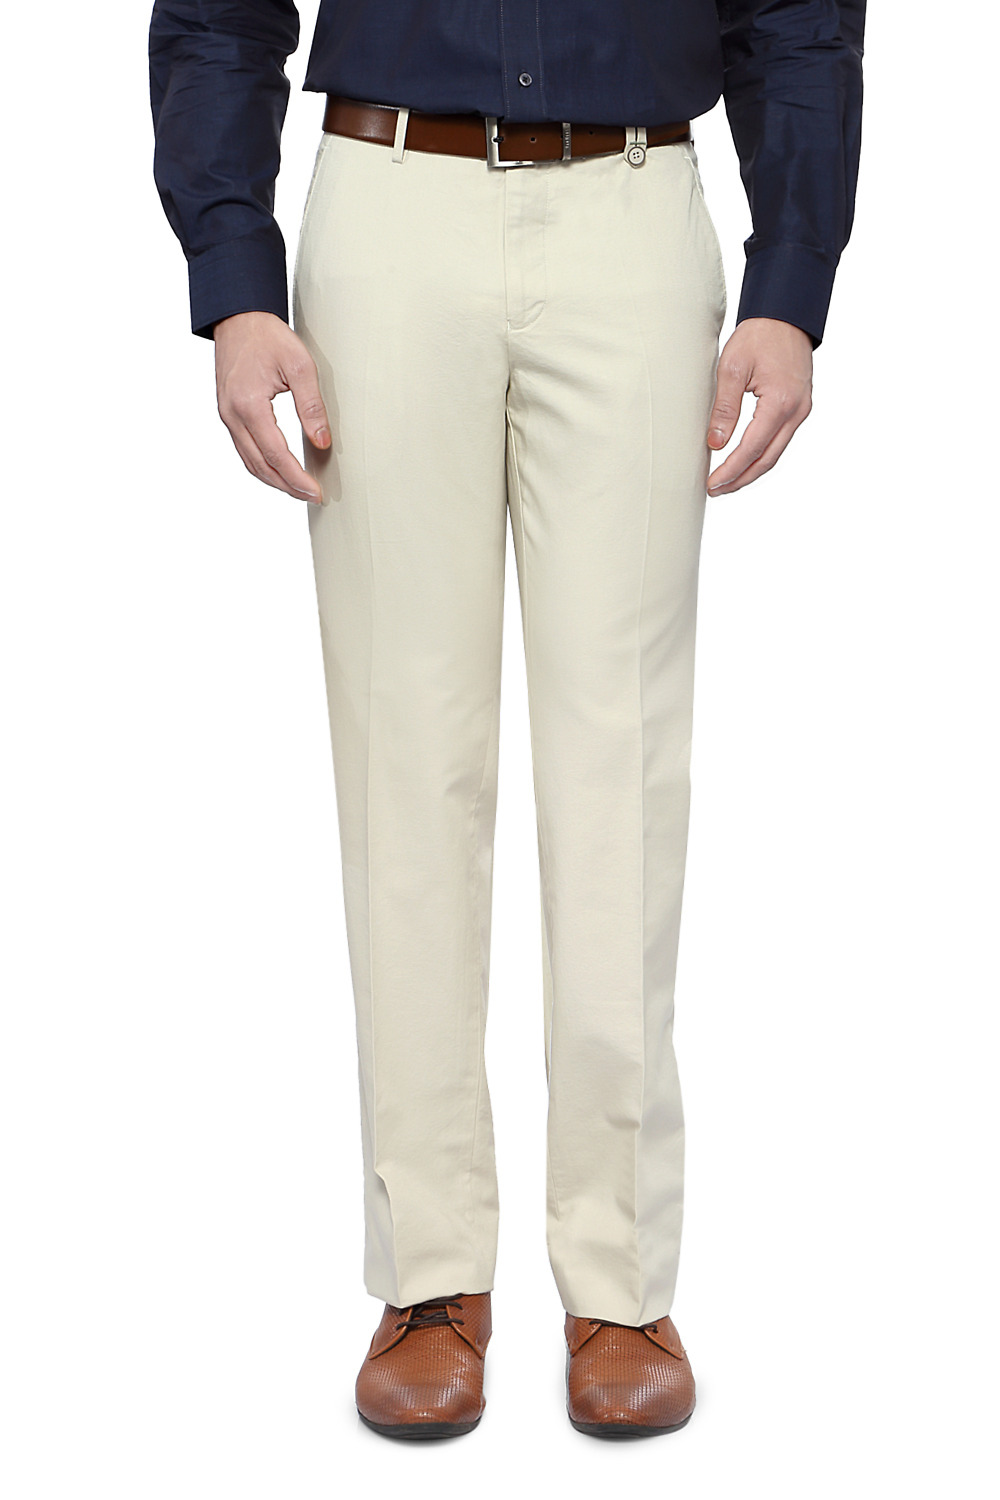 Find great deals on eBay for mens cream pants. Shop with confidence.